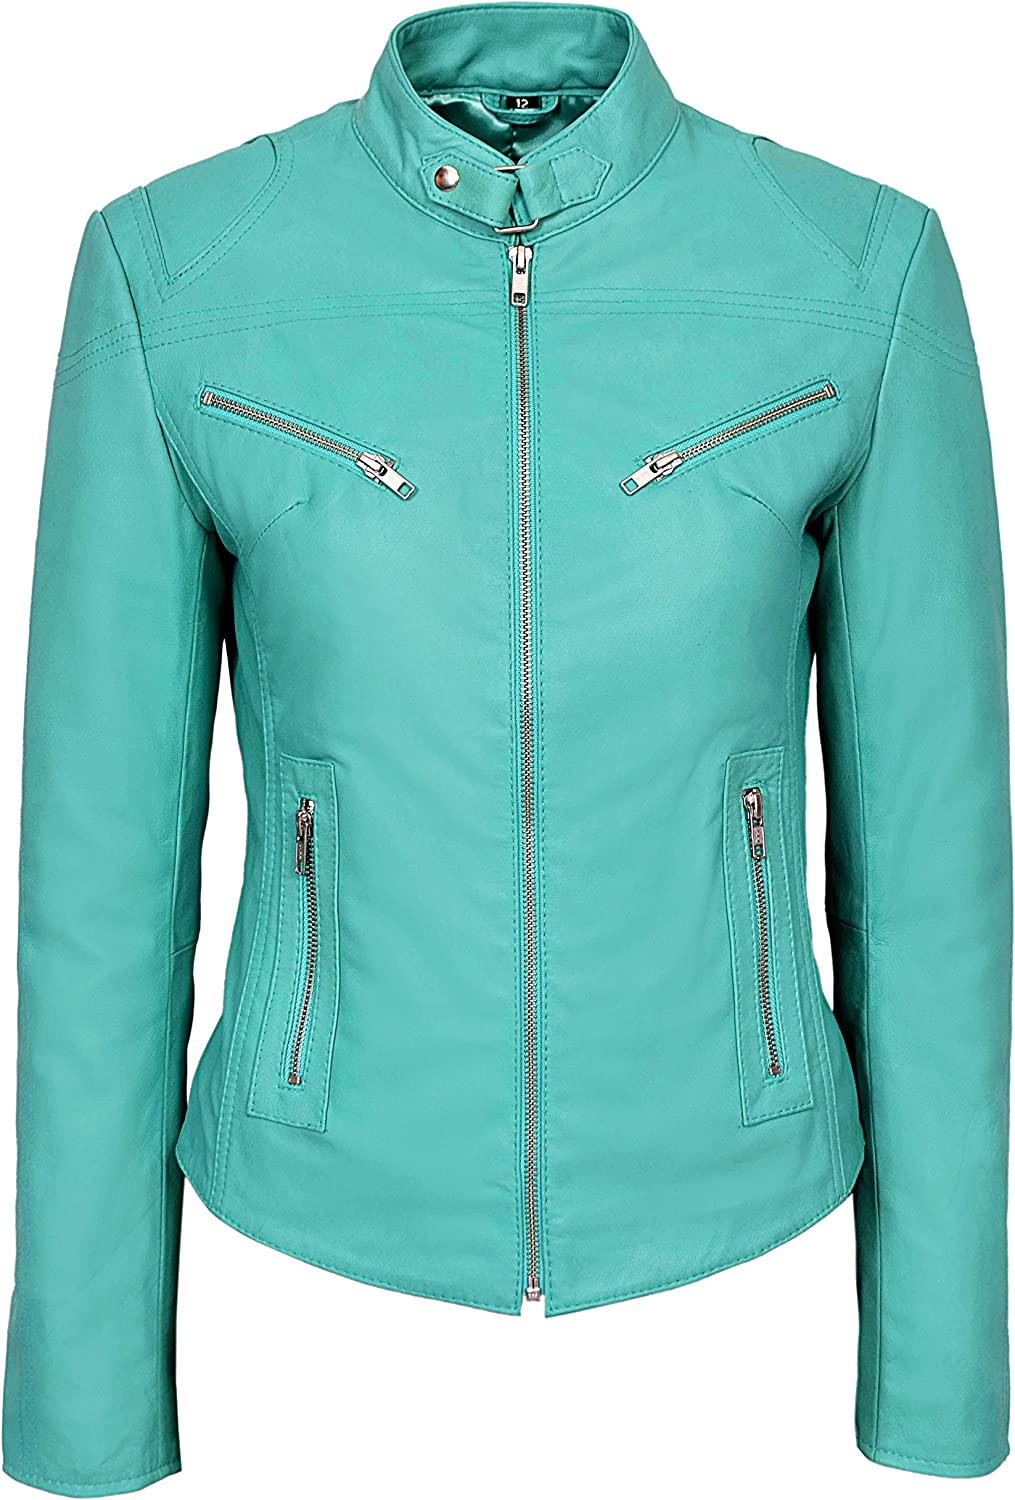 SPEED' Ladies TURQUOISE Cool Retro Biker Style Fitted Motorcycle Leather Jacket